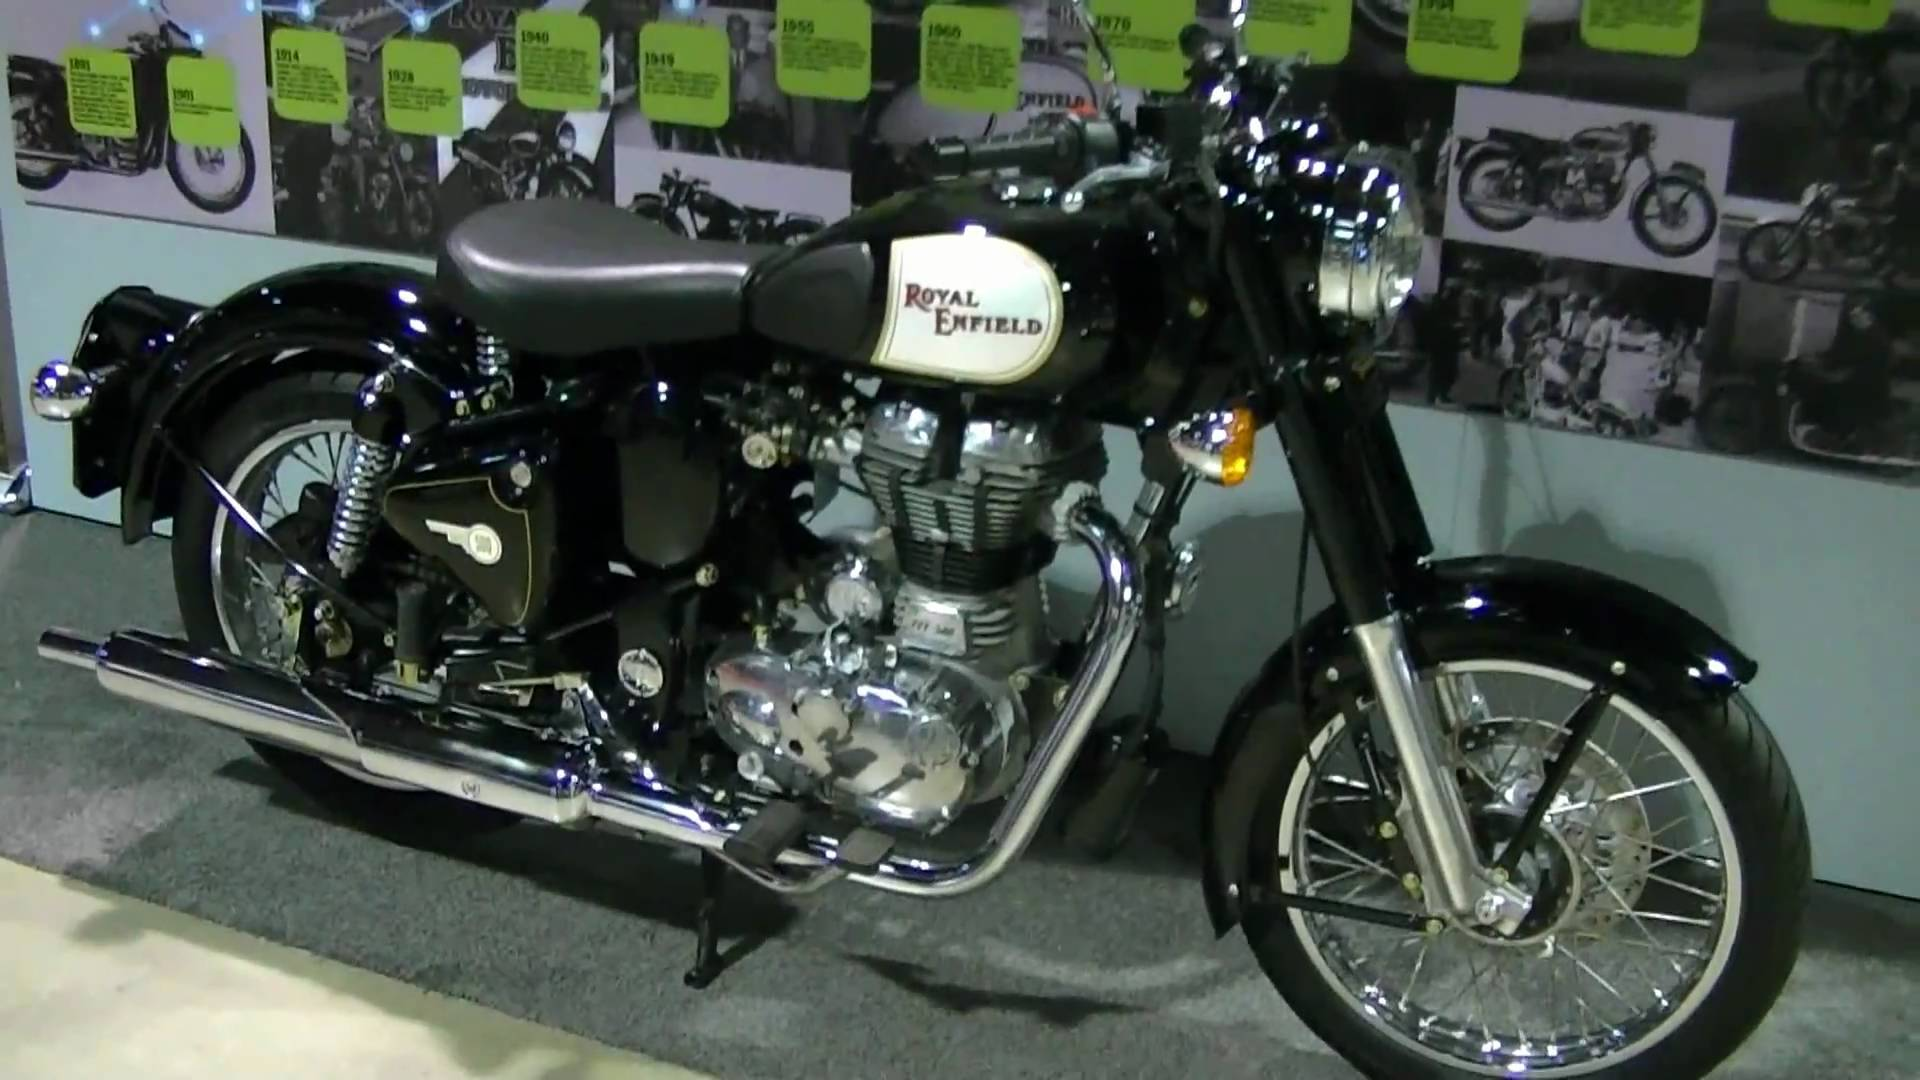 2007 royal enfield bullet 500 army pics specs and information. Black Bedroom Furniture Sets. Home Design Ideas